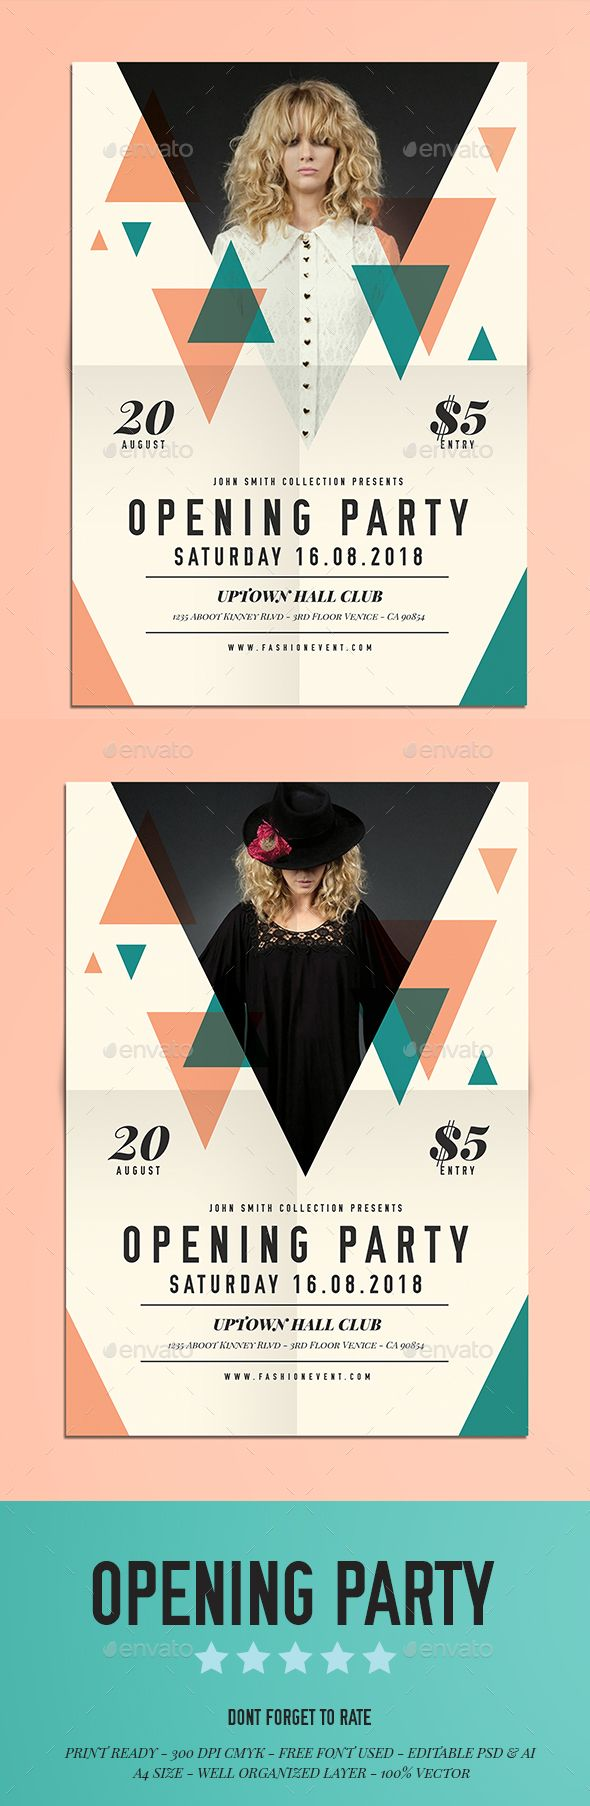 1000 ideas about flyer template flyer design opening party flyer